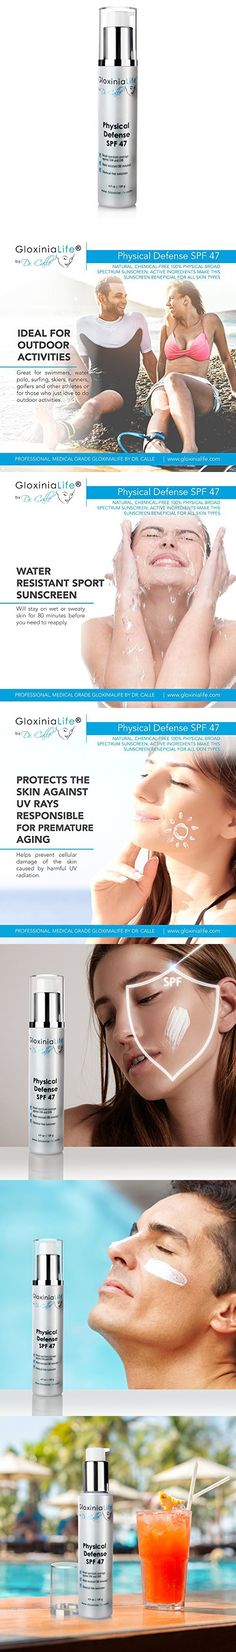 GloxiniaLife by Dr. Calle Physical Defense SPF Broad Spectrum Facial Sport Physical Sunscreen with Zinc Oxide and Titanium- Anti Aging with UV Skin Block Protection, Water Resistant, oz Tinted Moisturizer, Broad Spectrum, Sunscreen, Anti Aging, Physics, Facial, Sport, Water, Deporte